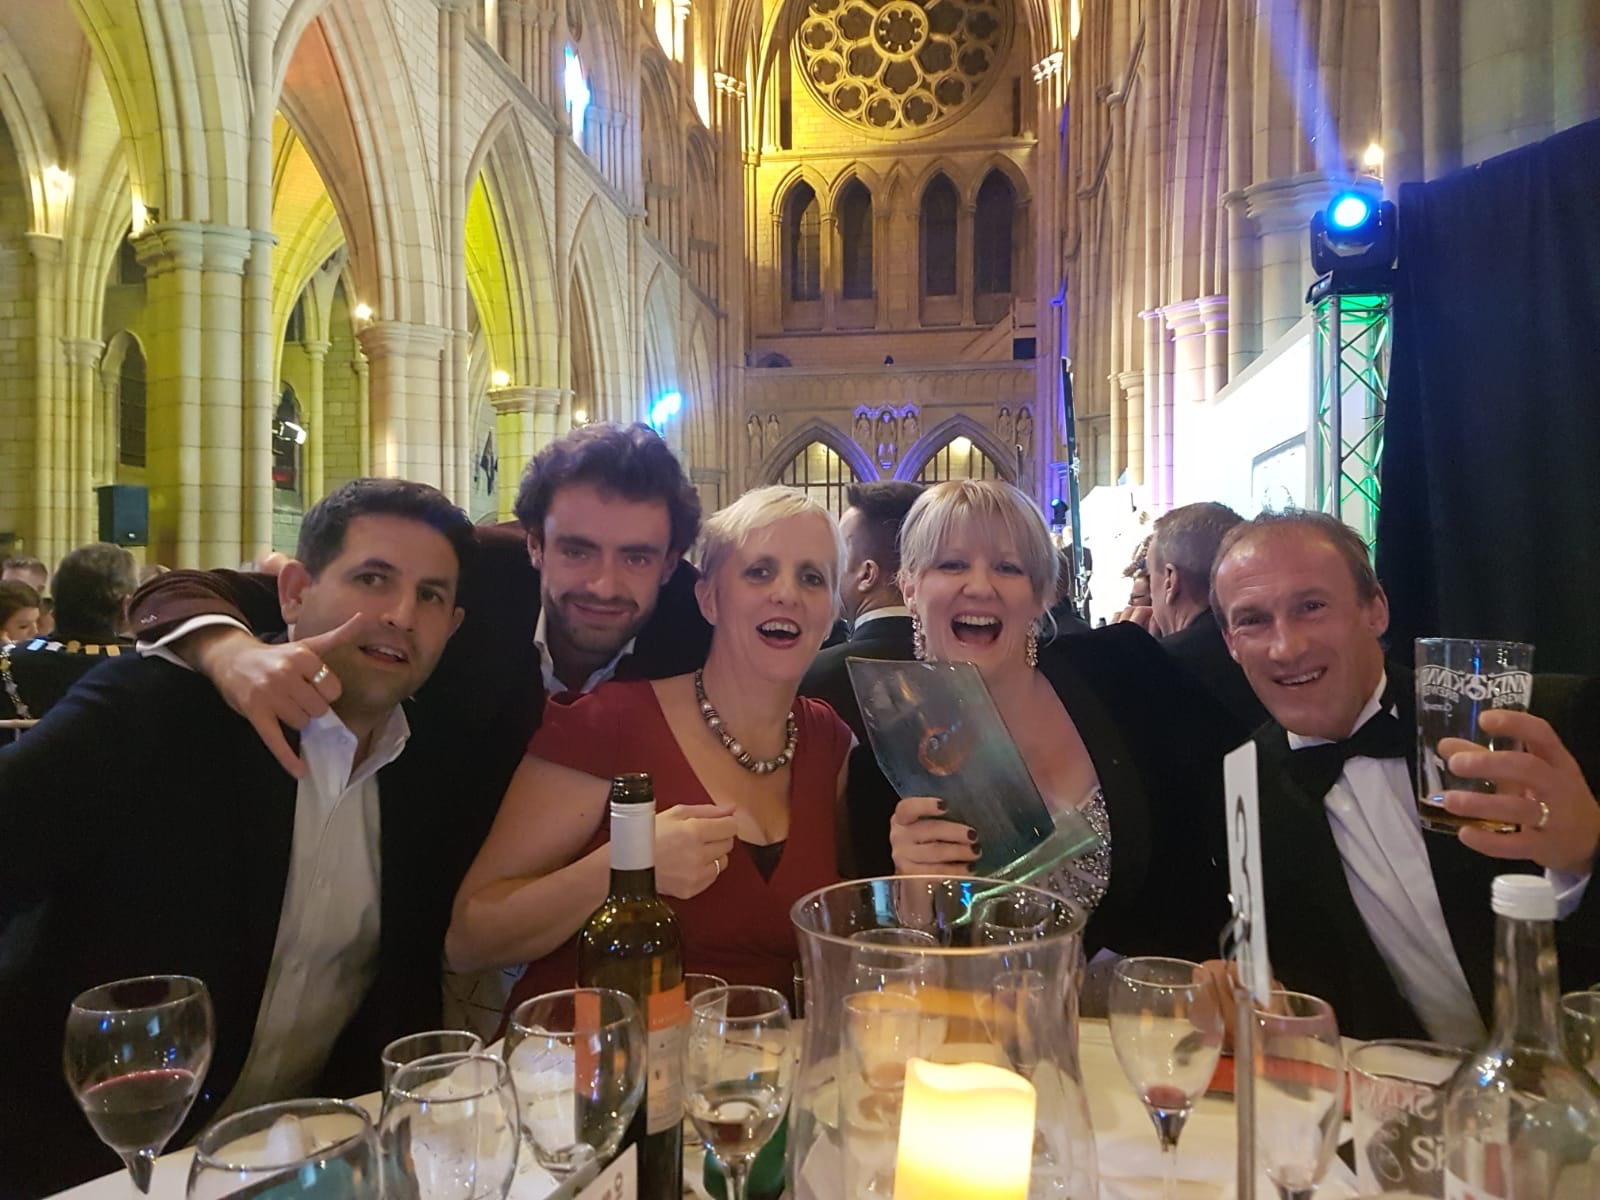 Now we've been shortlisted for a regional award